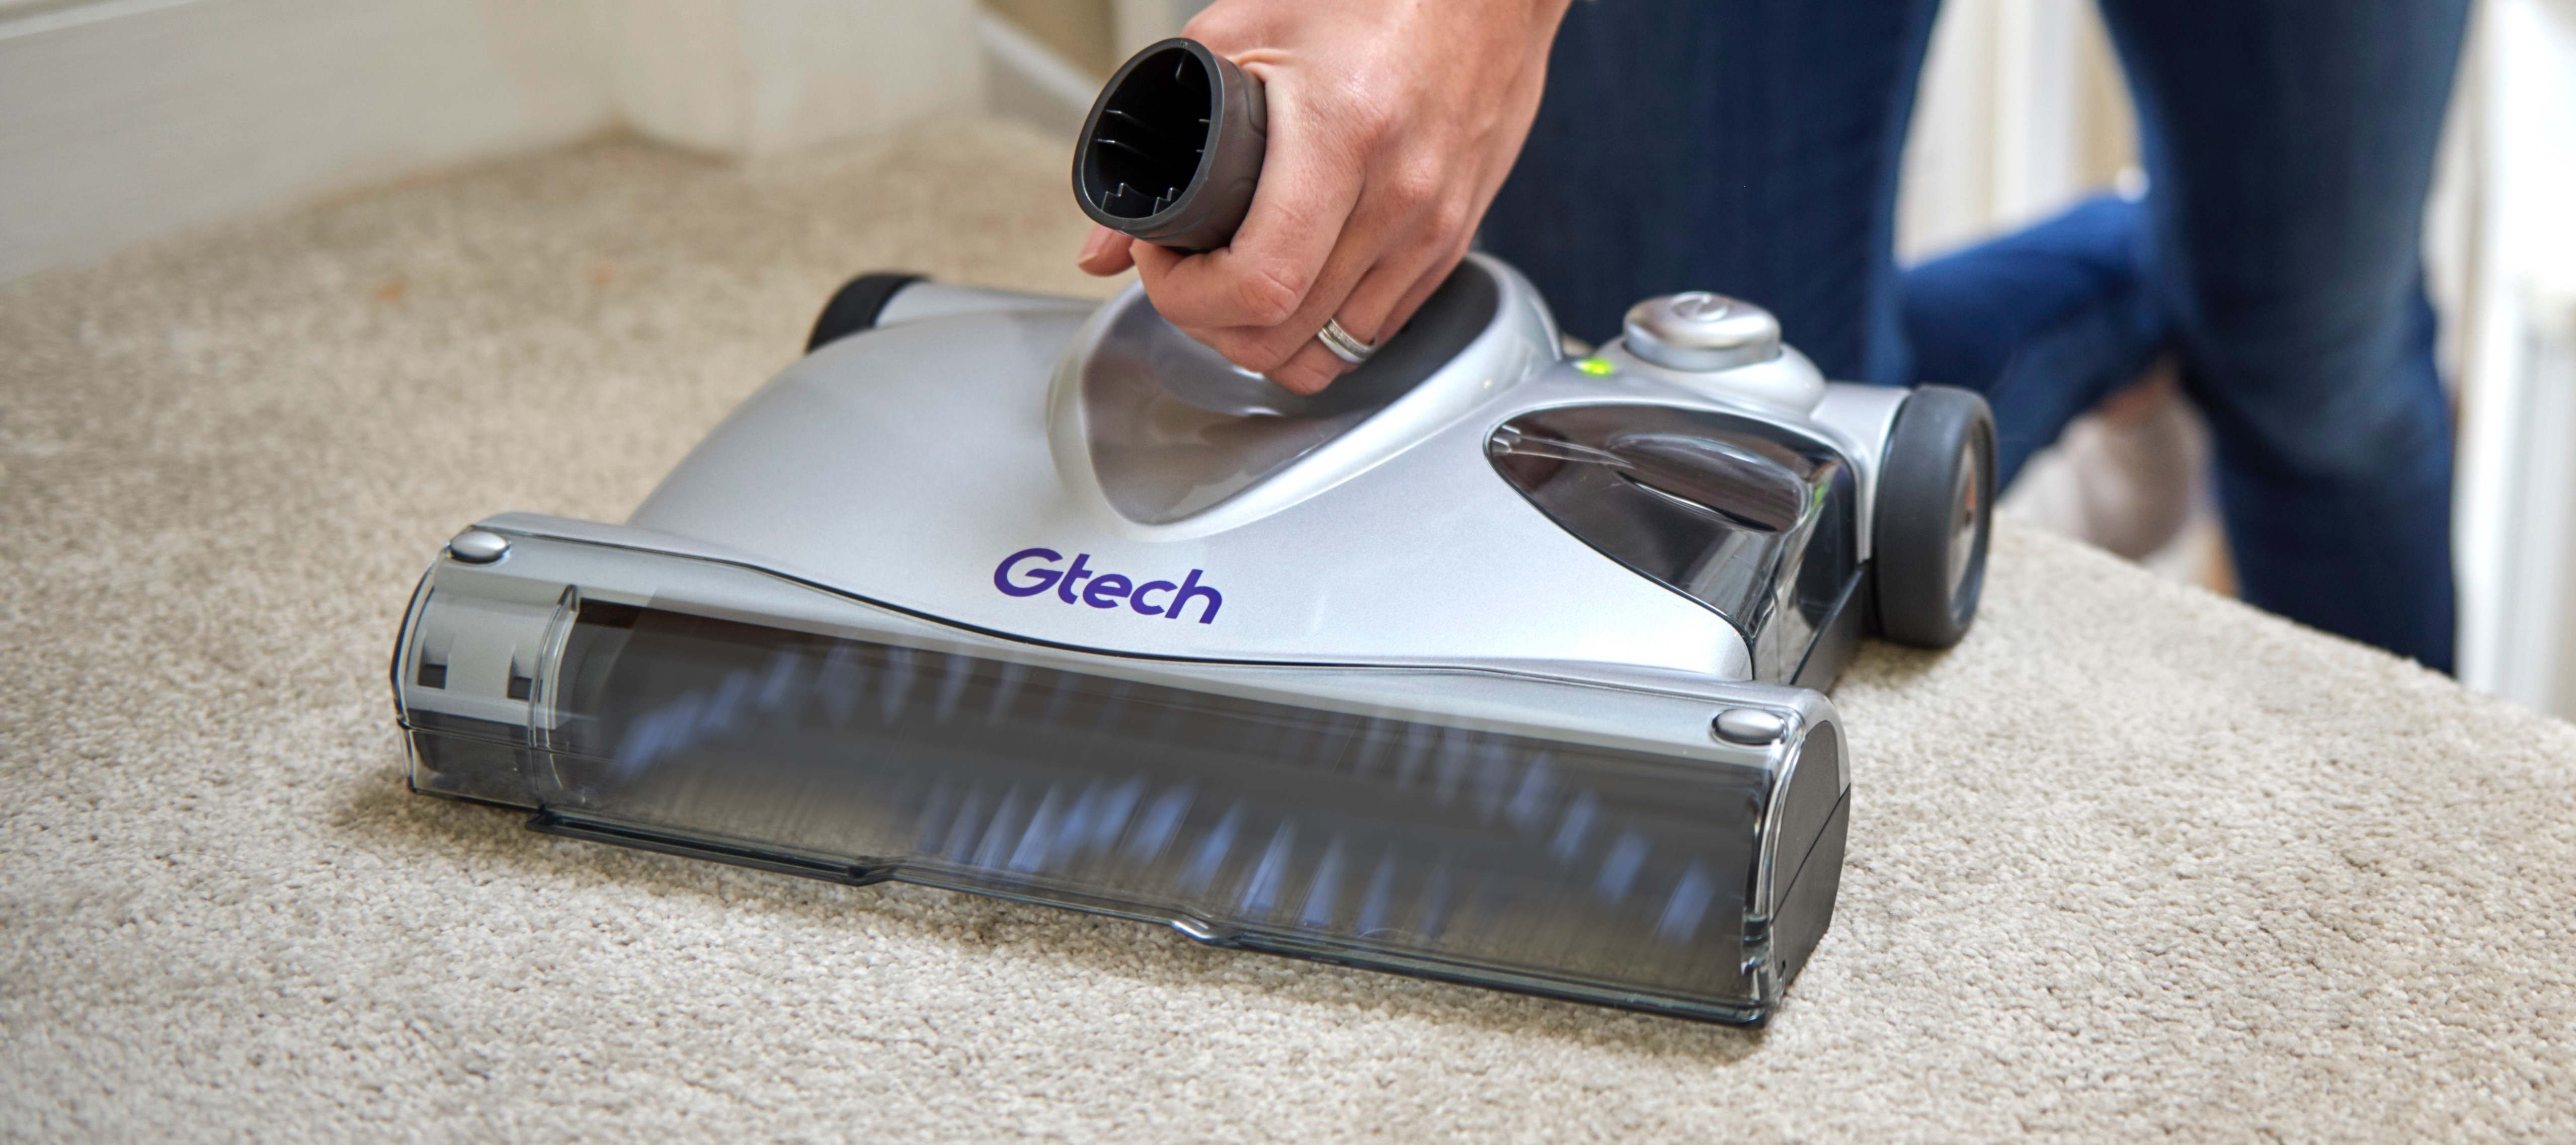 SW02 advanced battery powered carpet sweeper